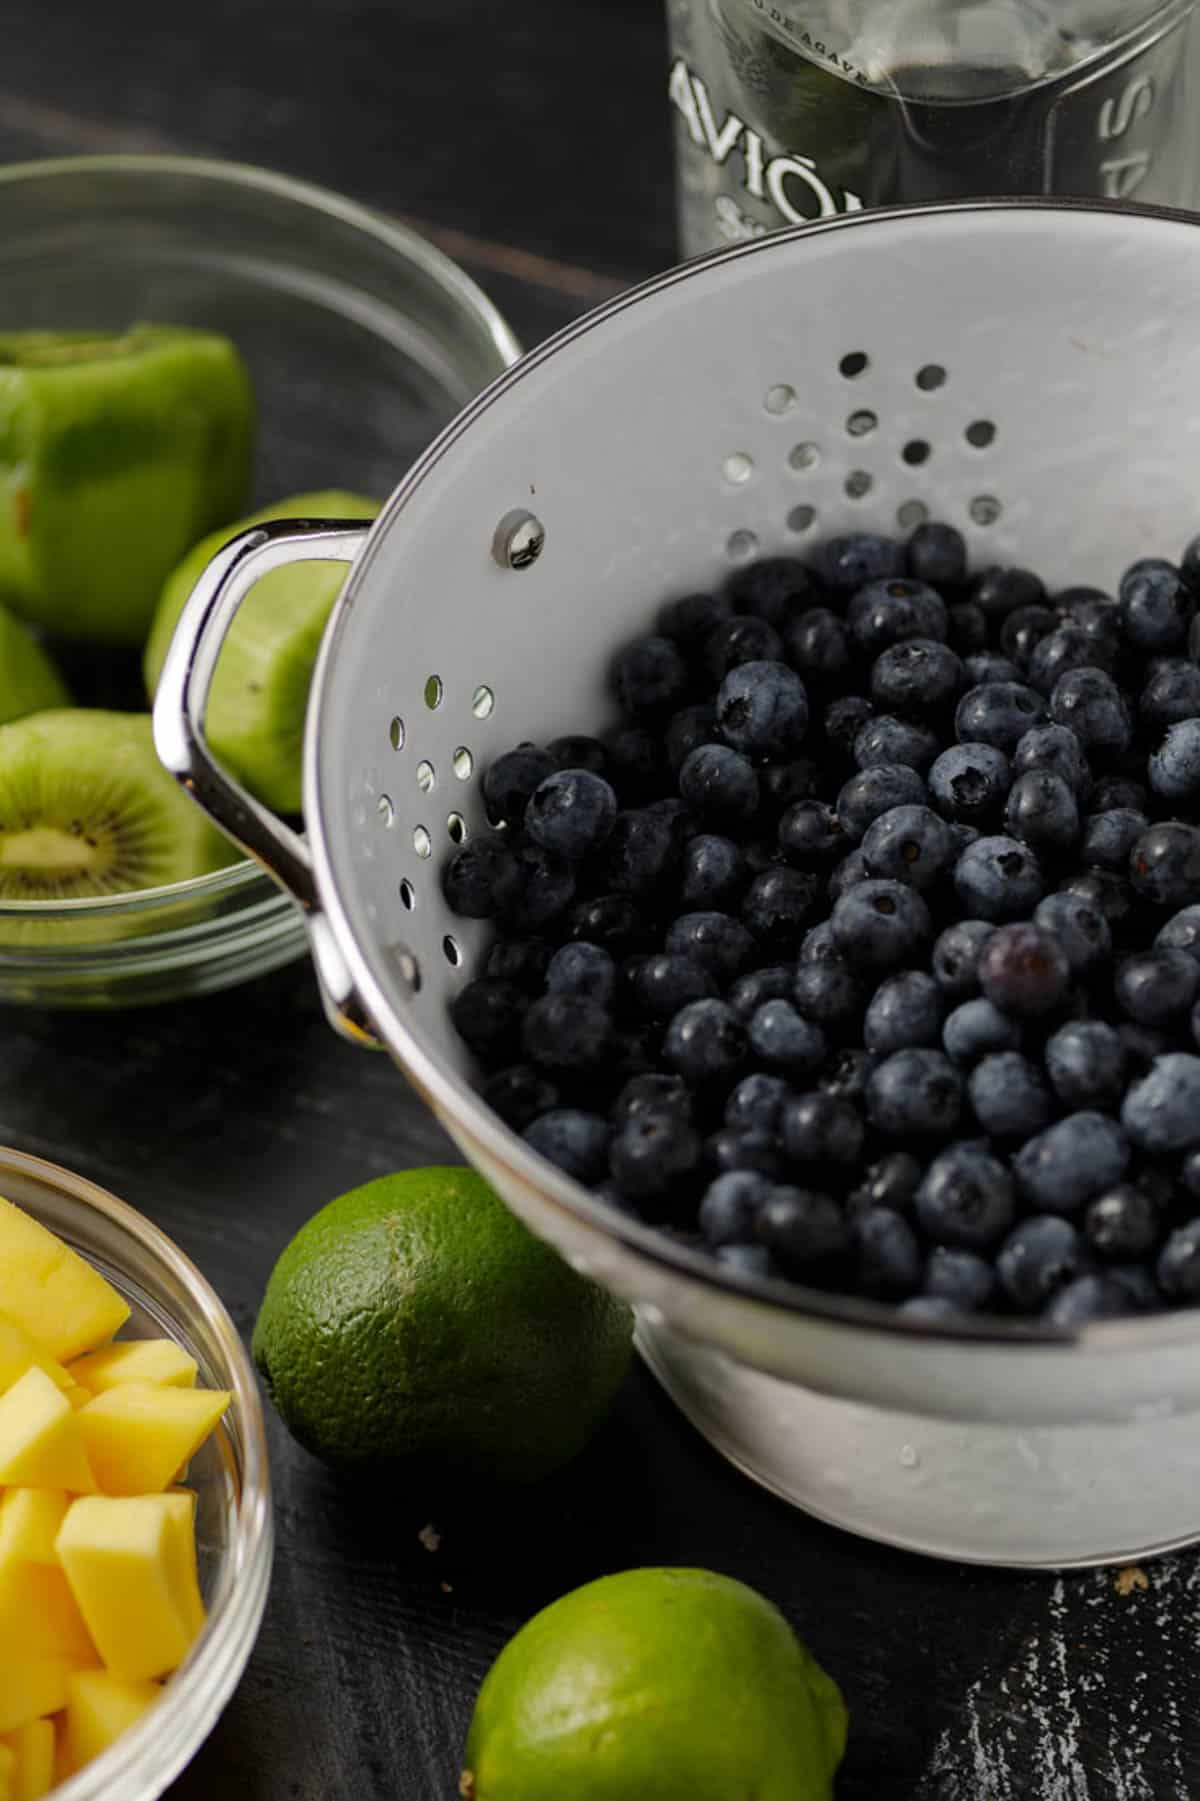 The ingredients for blueberry tequila salad.